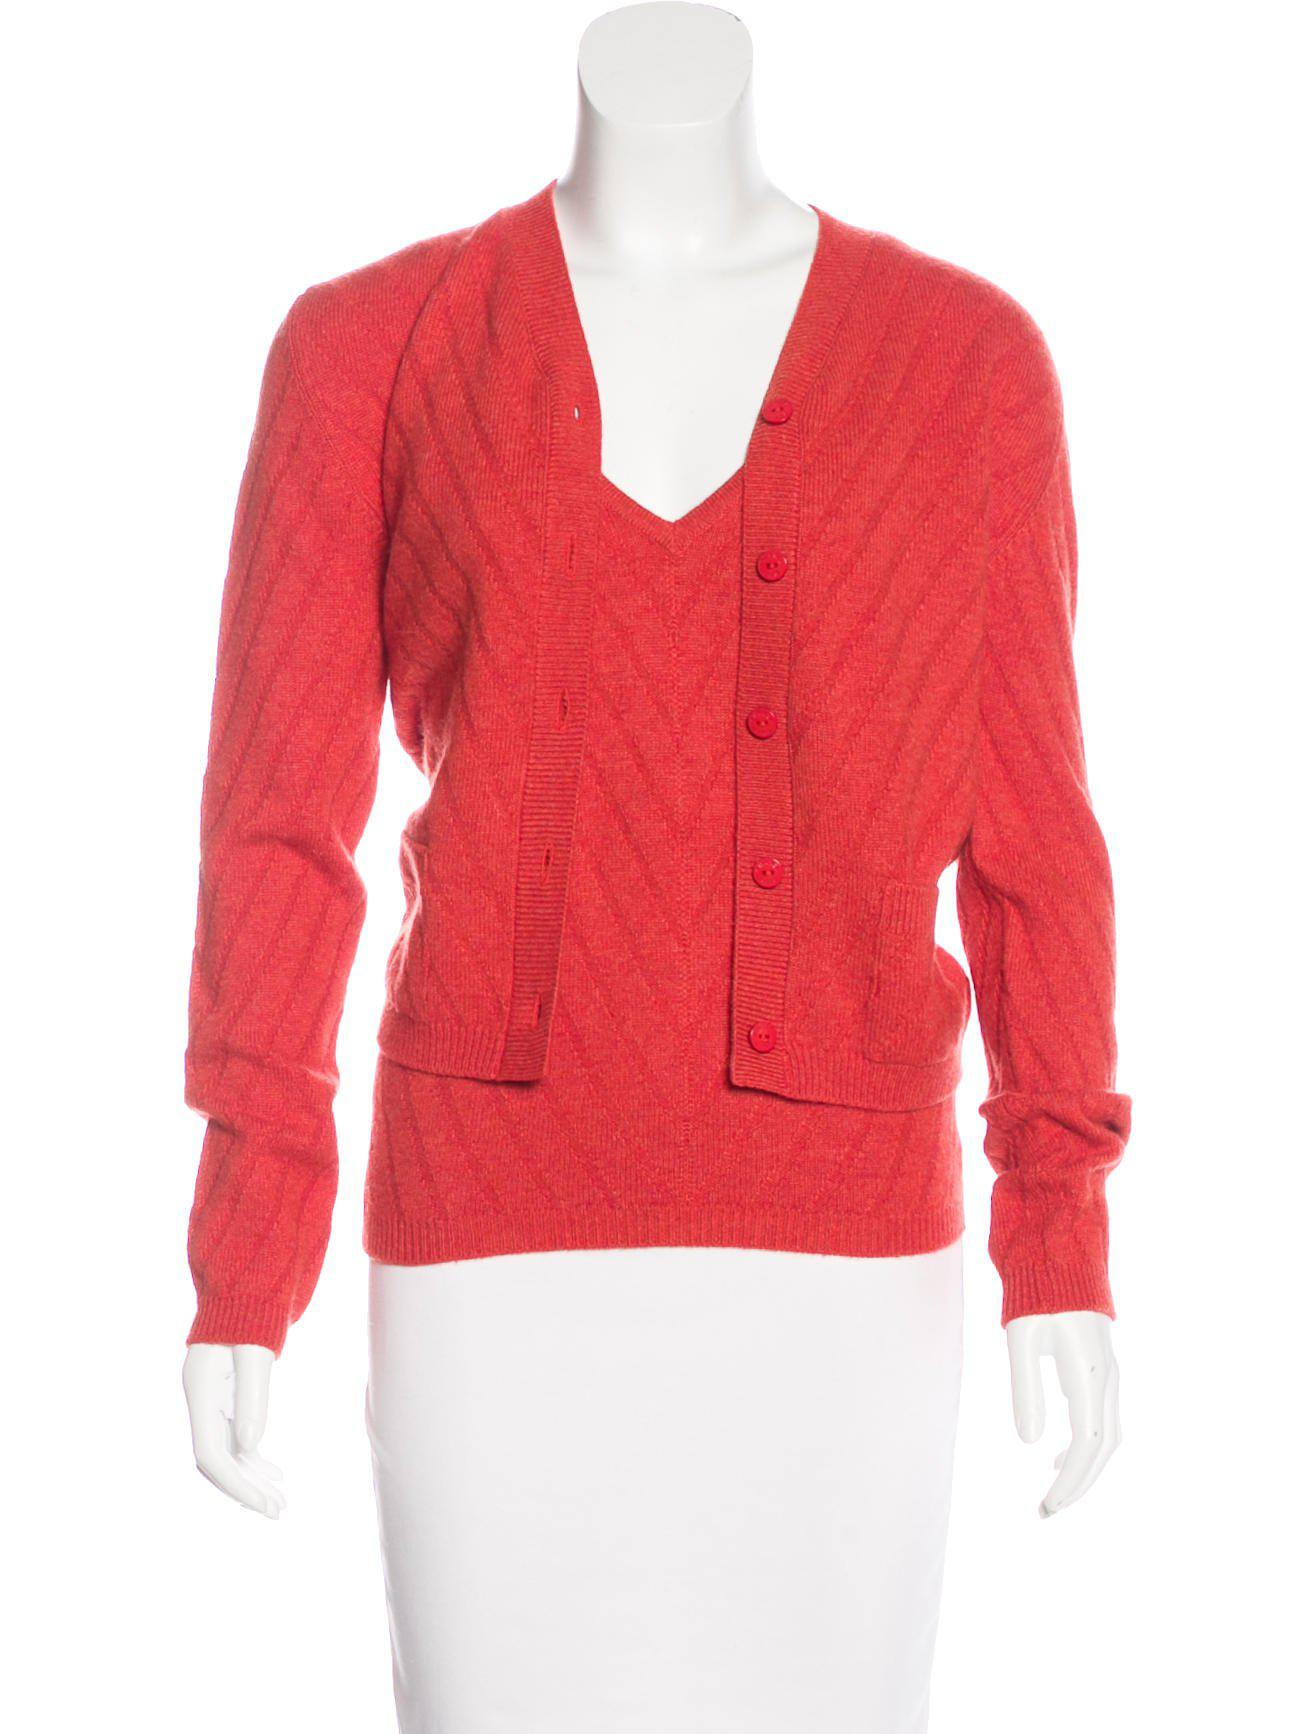 Chanel Cashmere Cardigan Set Orange in Red | Lyst